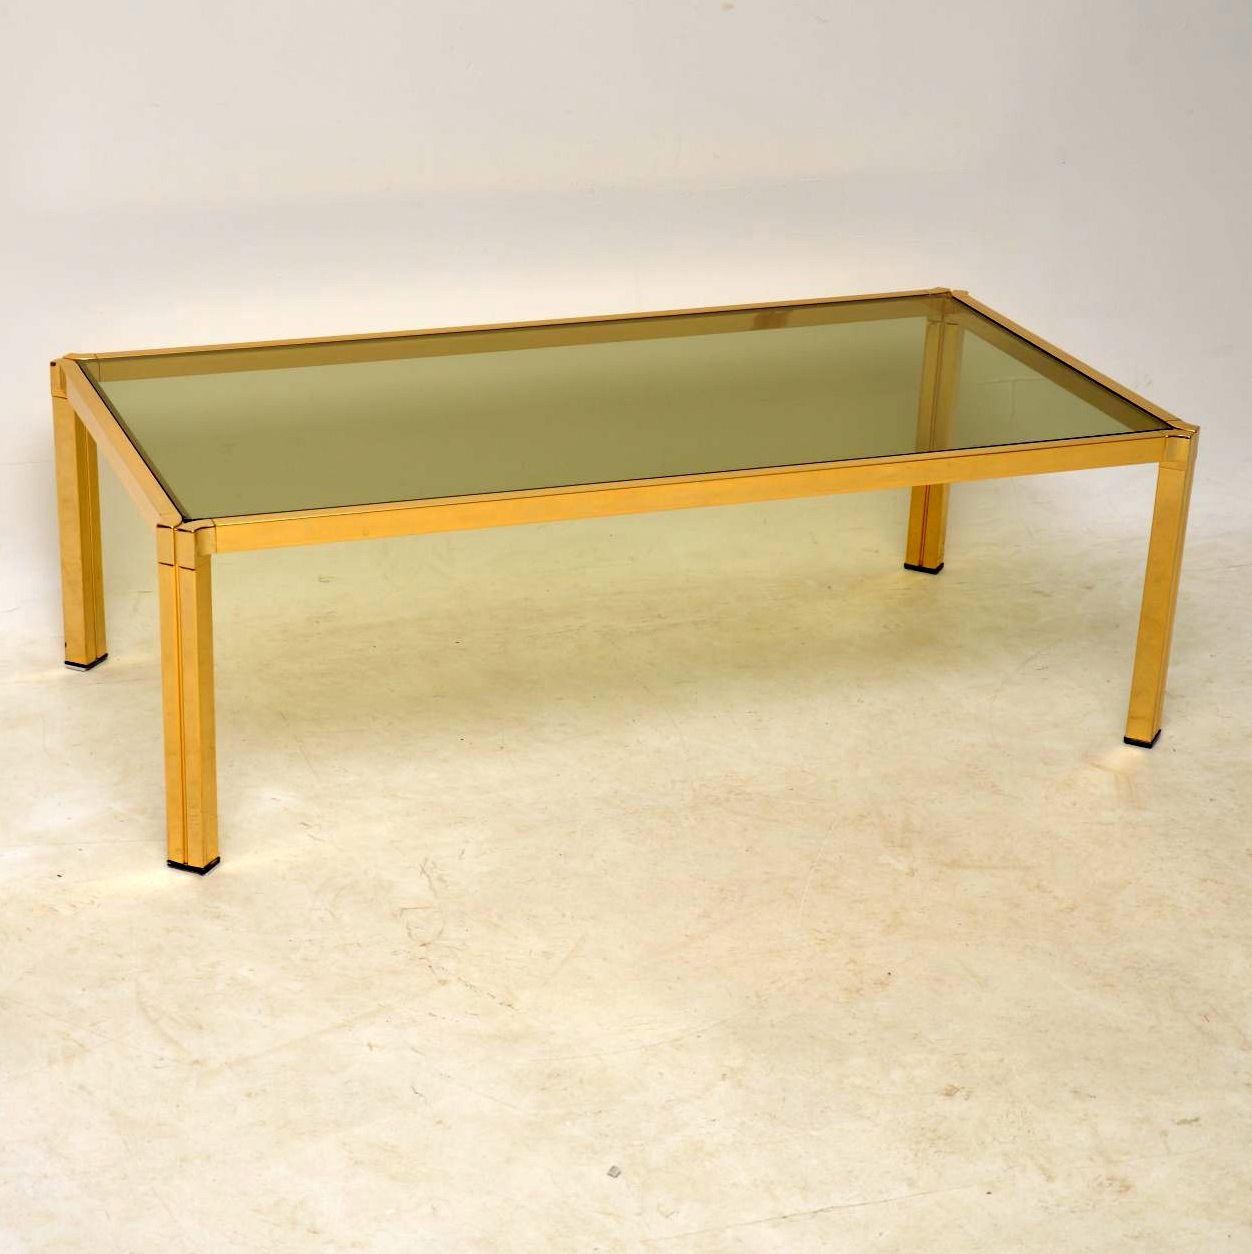 vintage brass coffee table retrospective interiors end black glass top round concrete reclaimed wood set very narrow accent butterfly chair make butcher block cutting board bar